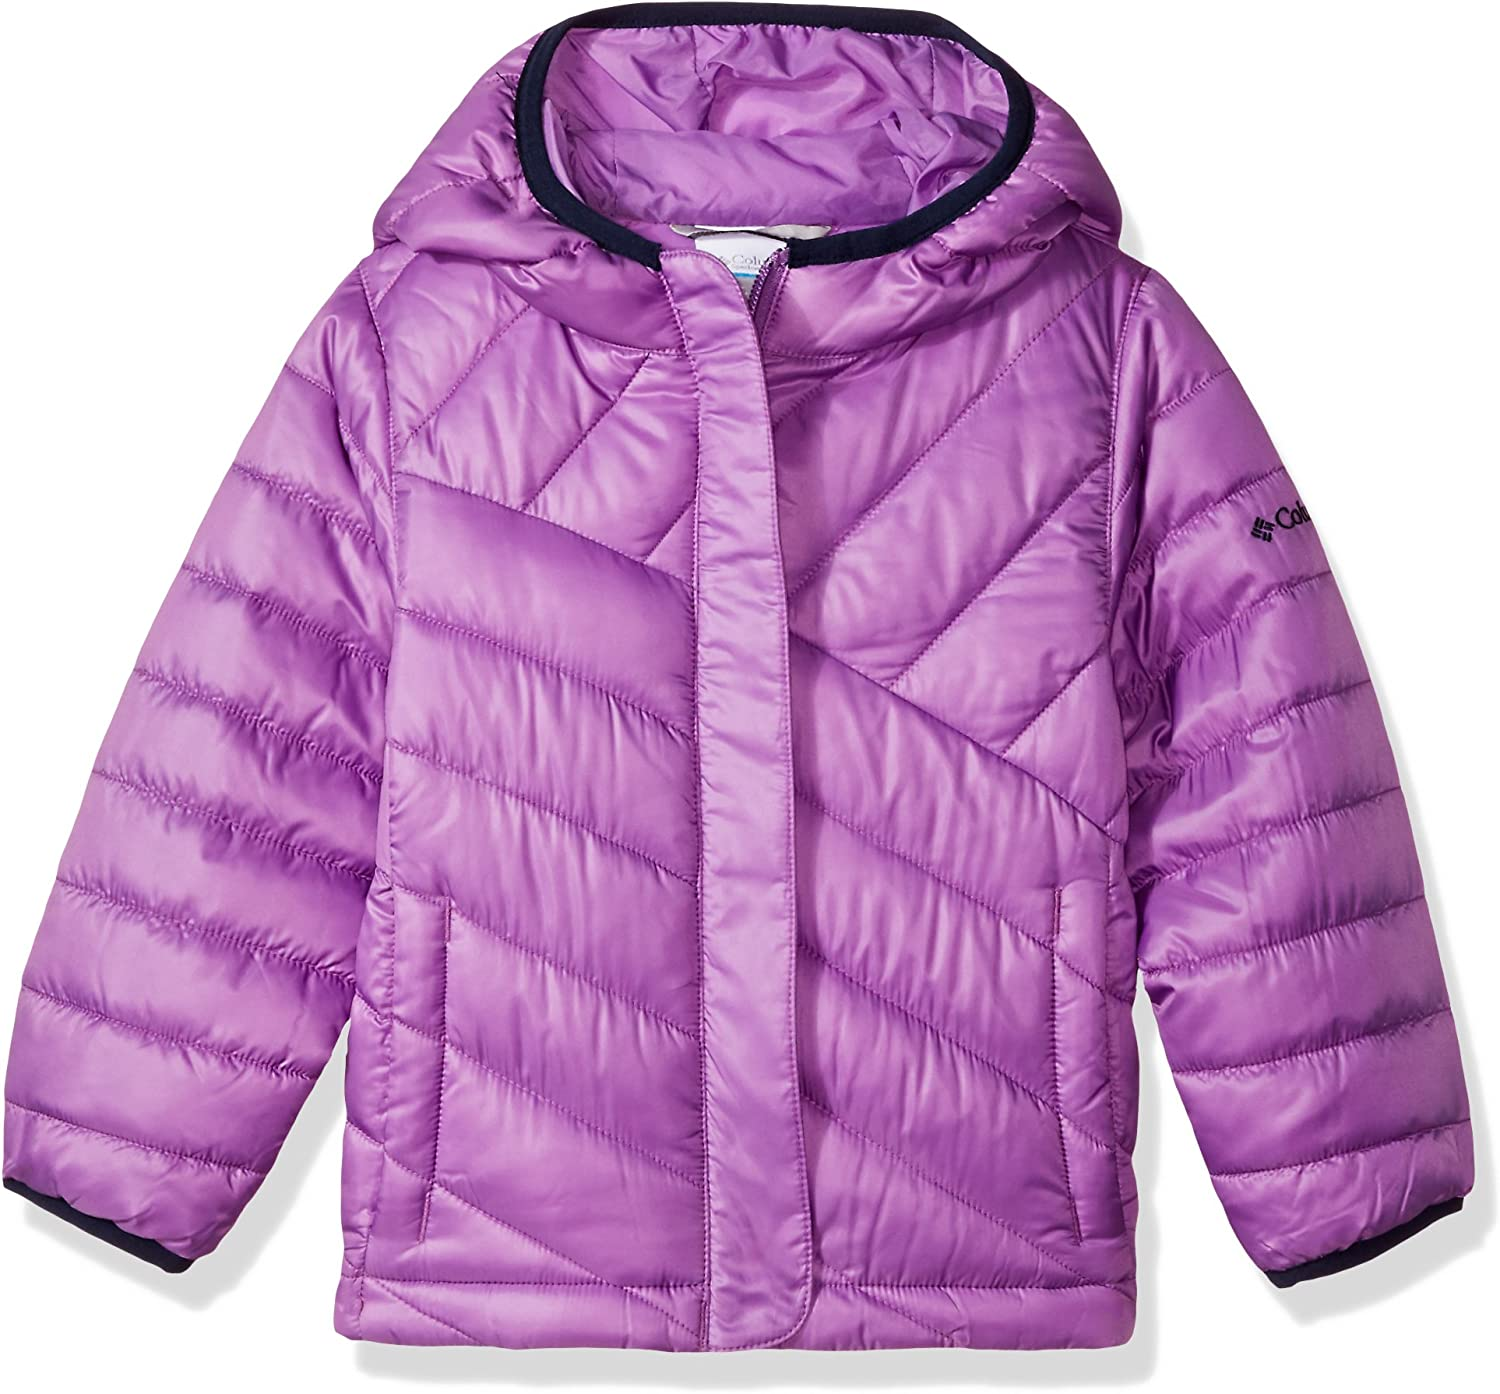 Columbia Boys' Powder Jacket Puffer Sales results No. 1 Quality inspection Lite